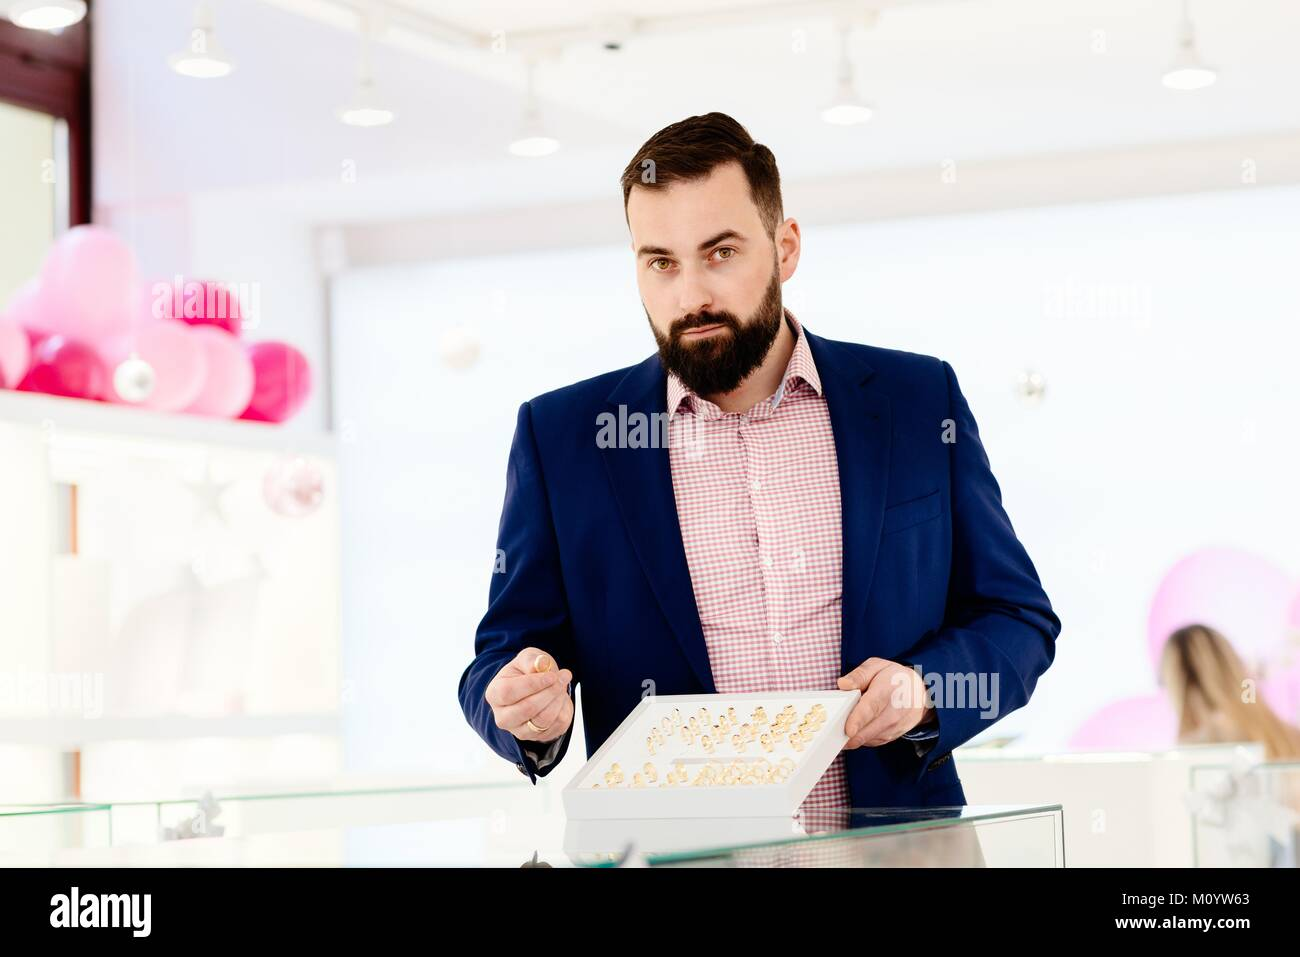 Attractive Man With A Beard Showing A Collection Of Wedding